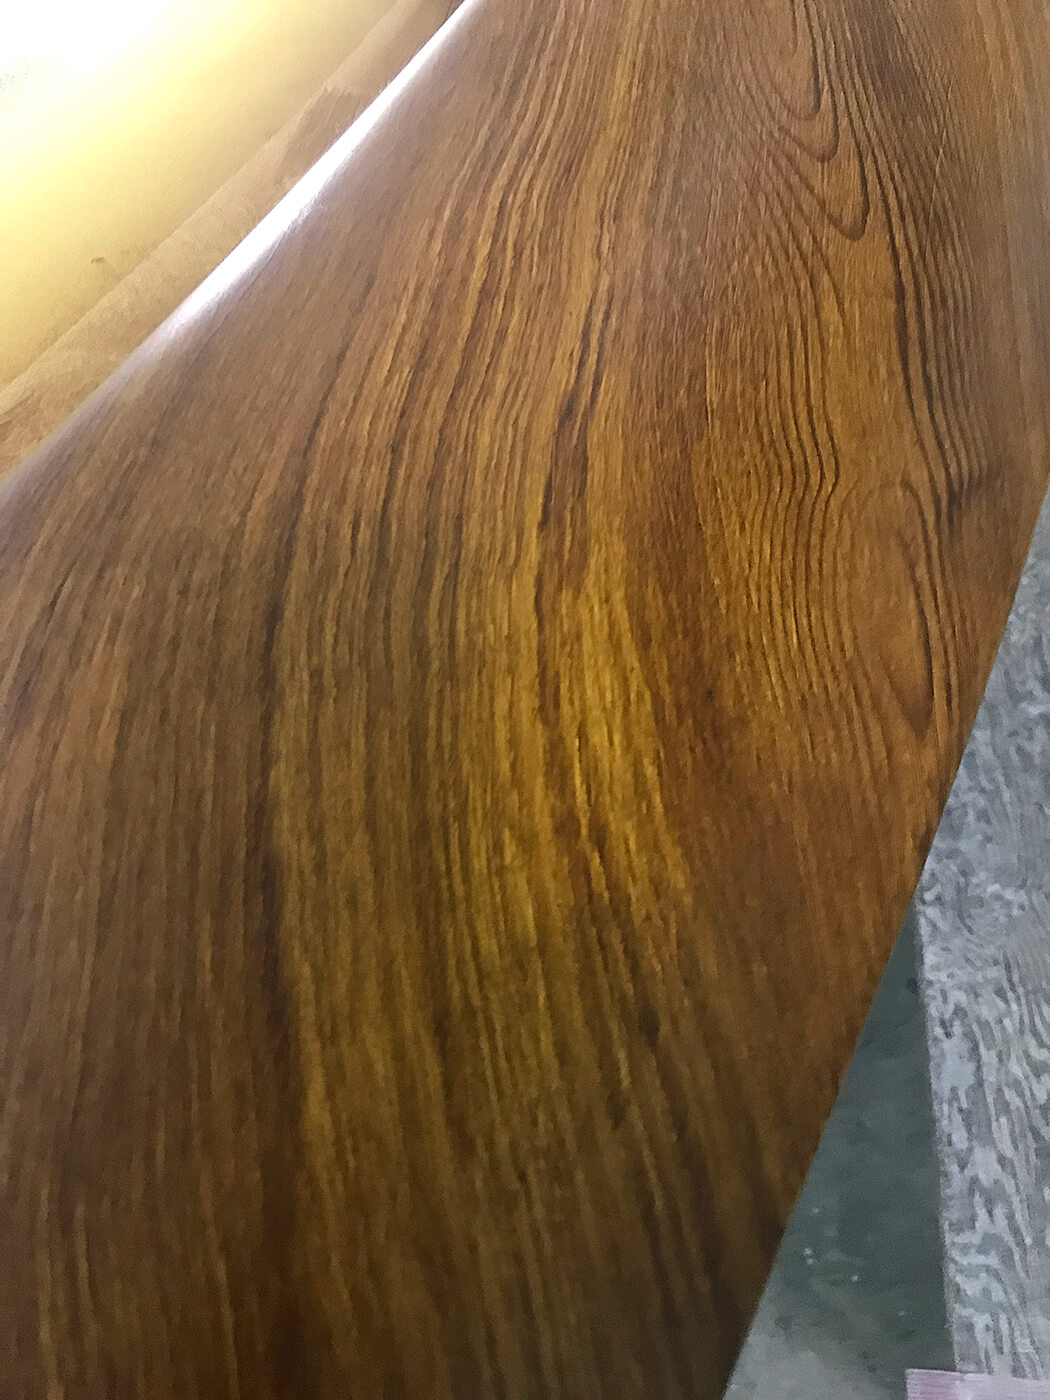 Shearline Boatworks Morehead City North Carolina Faux Teak wood pattern detail grain vessel